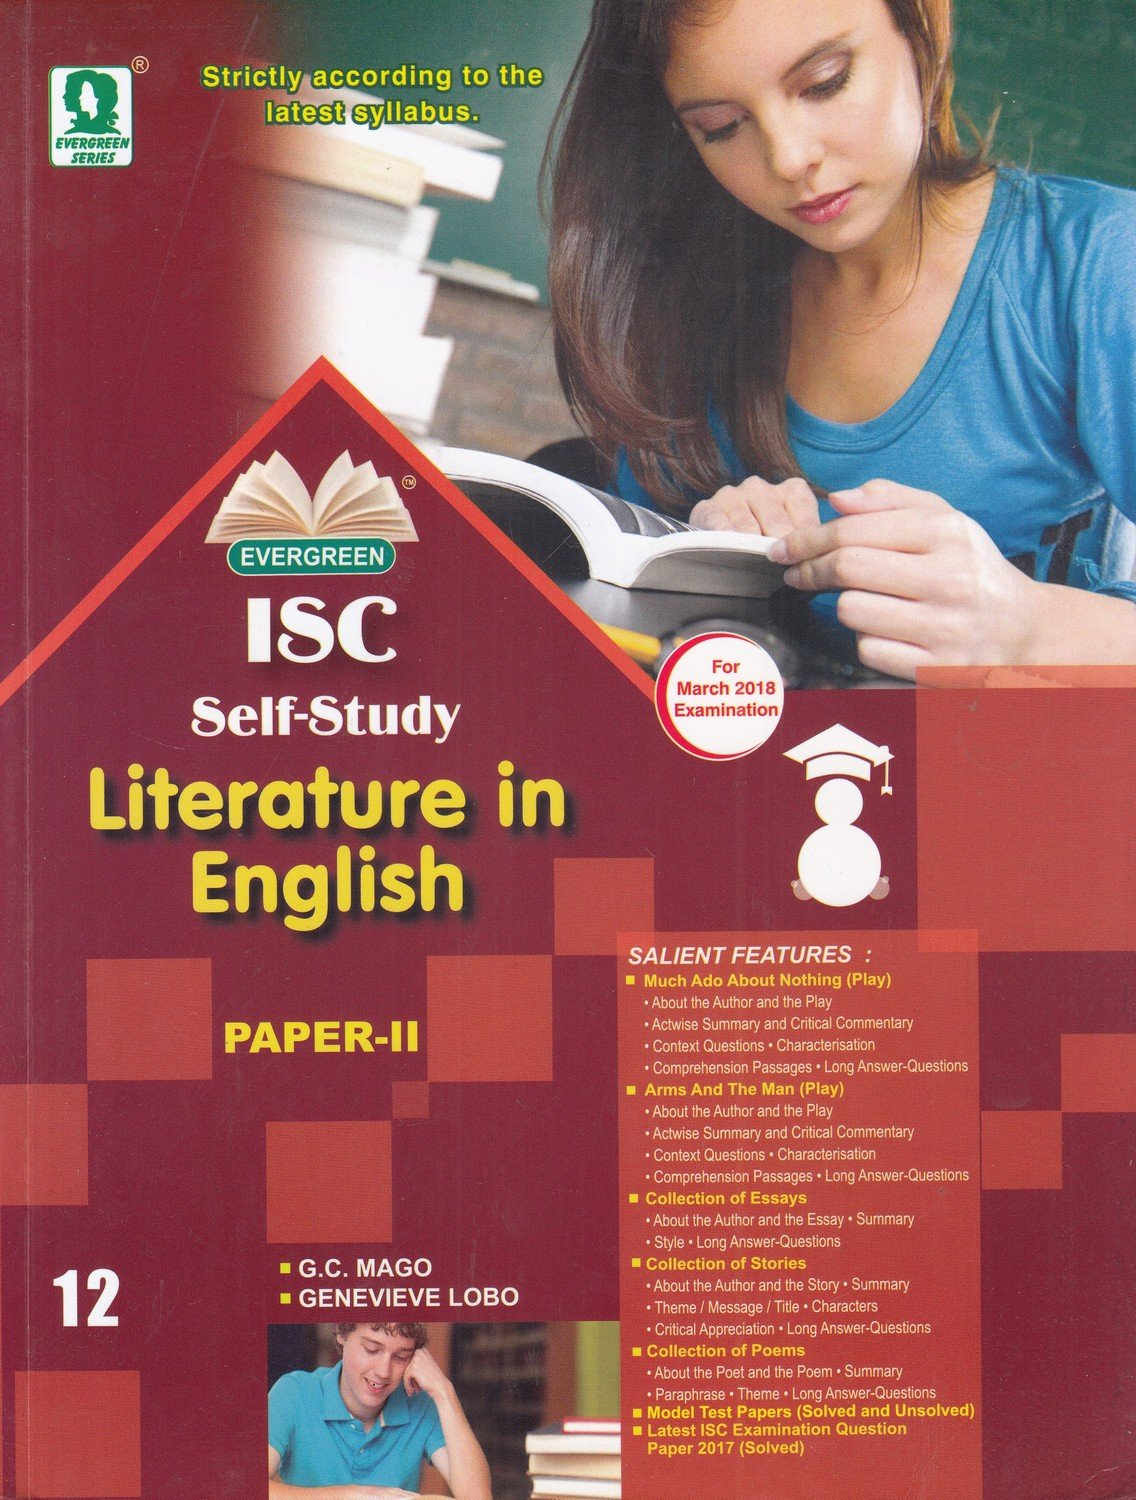 in buy isc self study in literature in english paper  in buy isc self study in literature in english paper 2 for 2018 examination class 12 book online at low prices in isc self study in